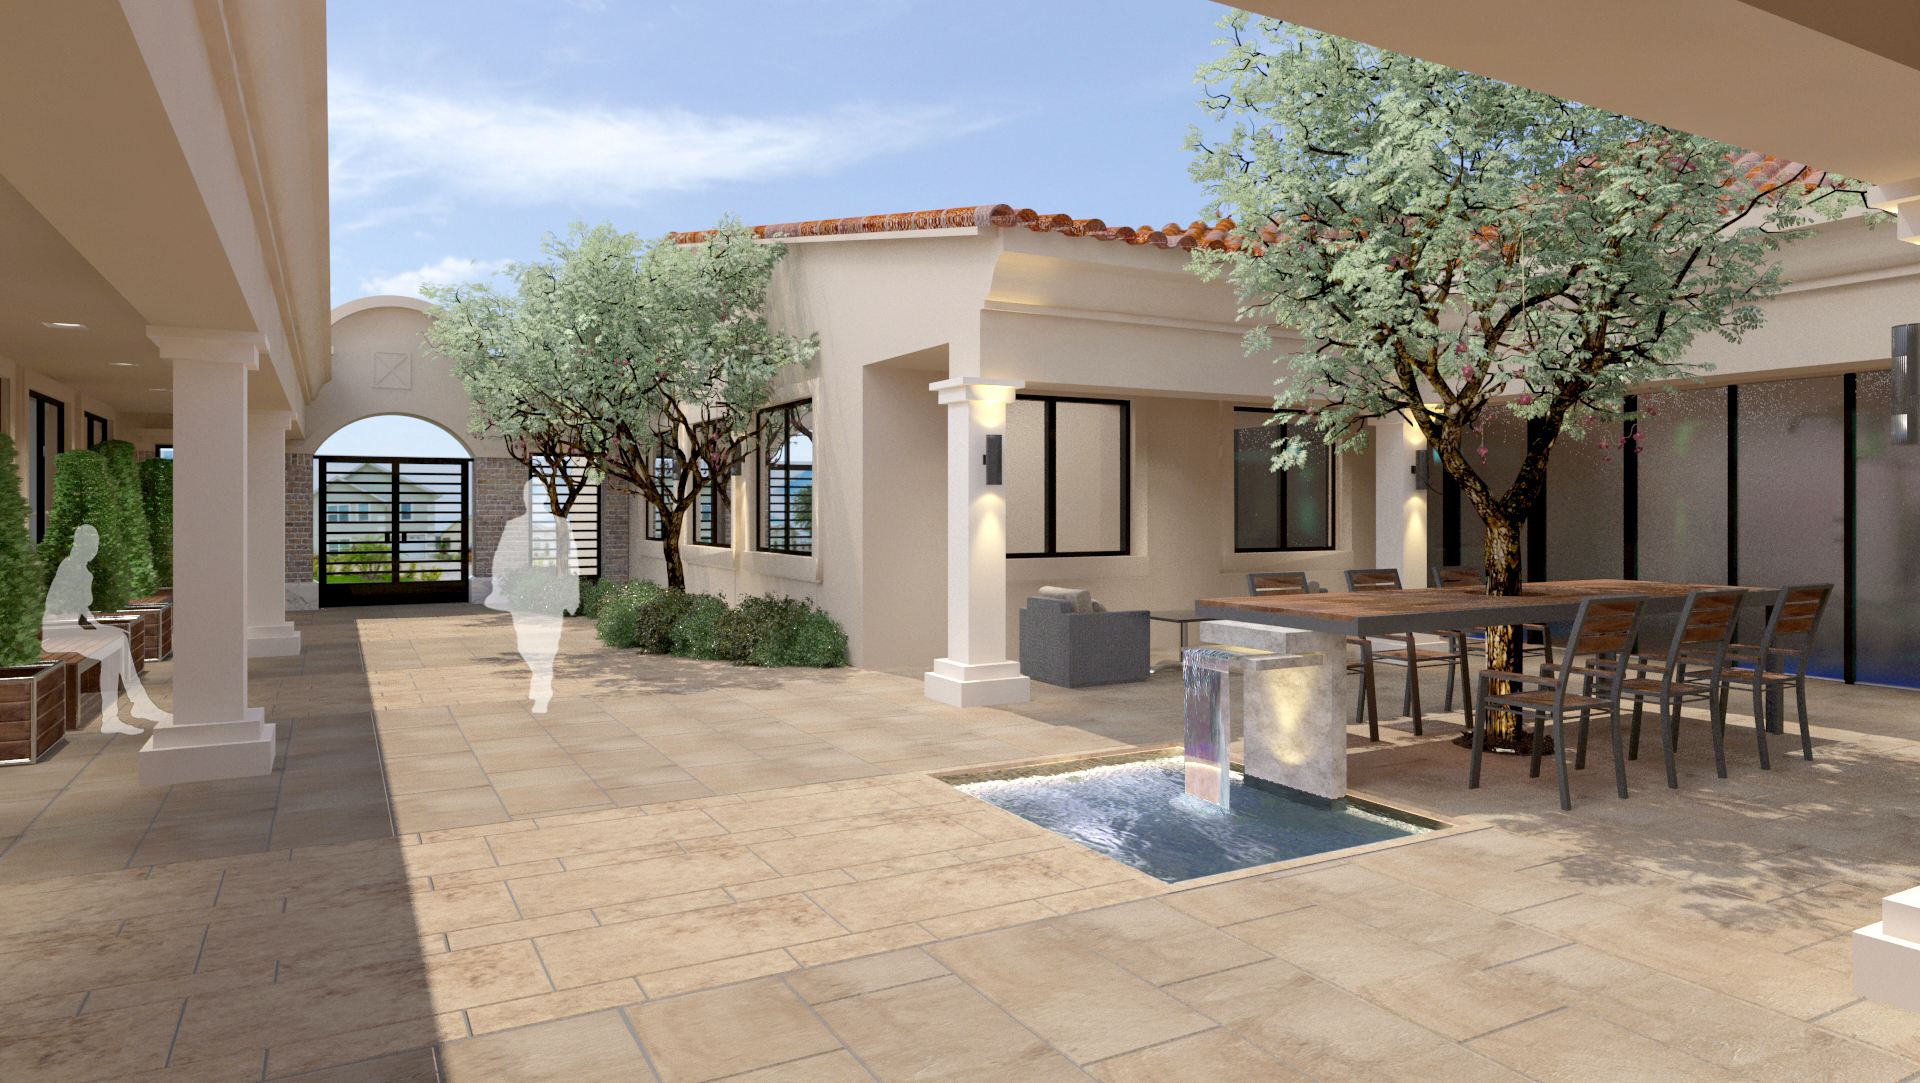 7 Designs and Development Landscaping